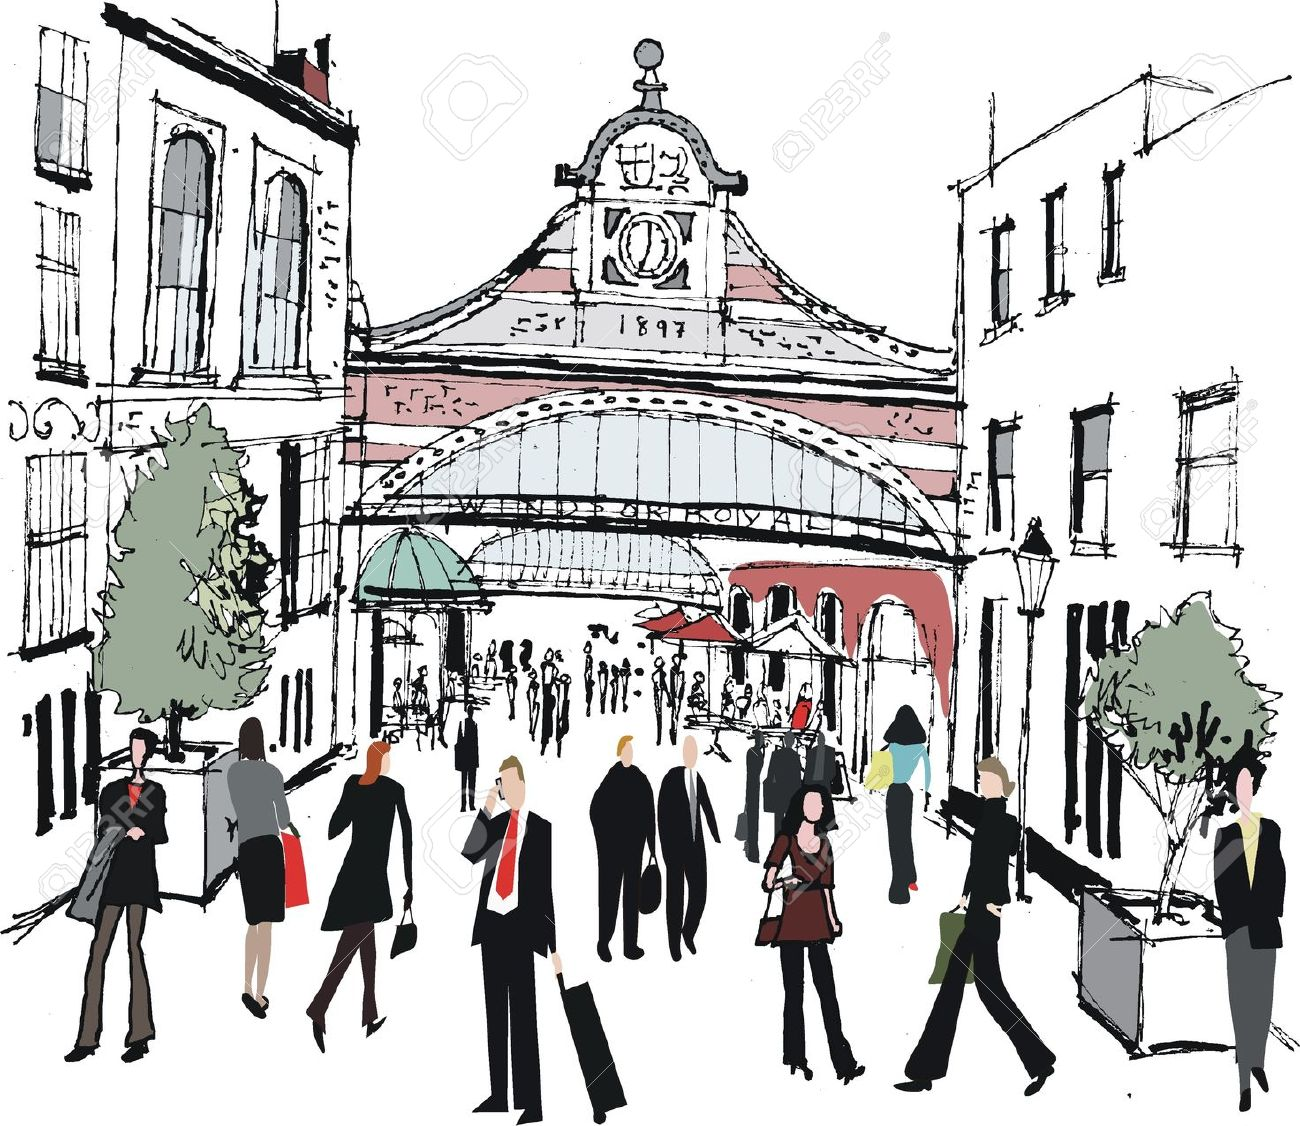 Vector Illustration Of Windsor Railway Station, England Royalty.